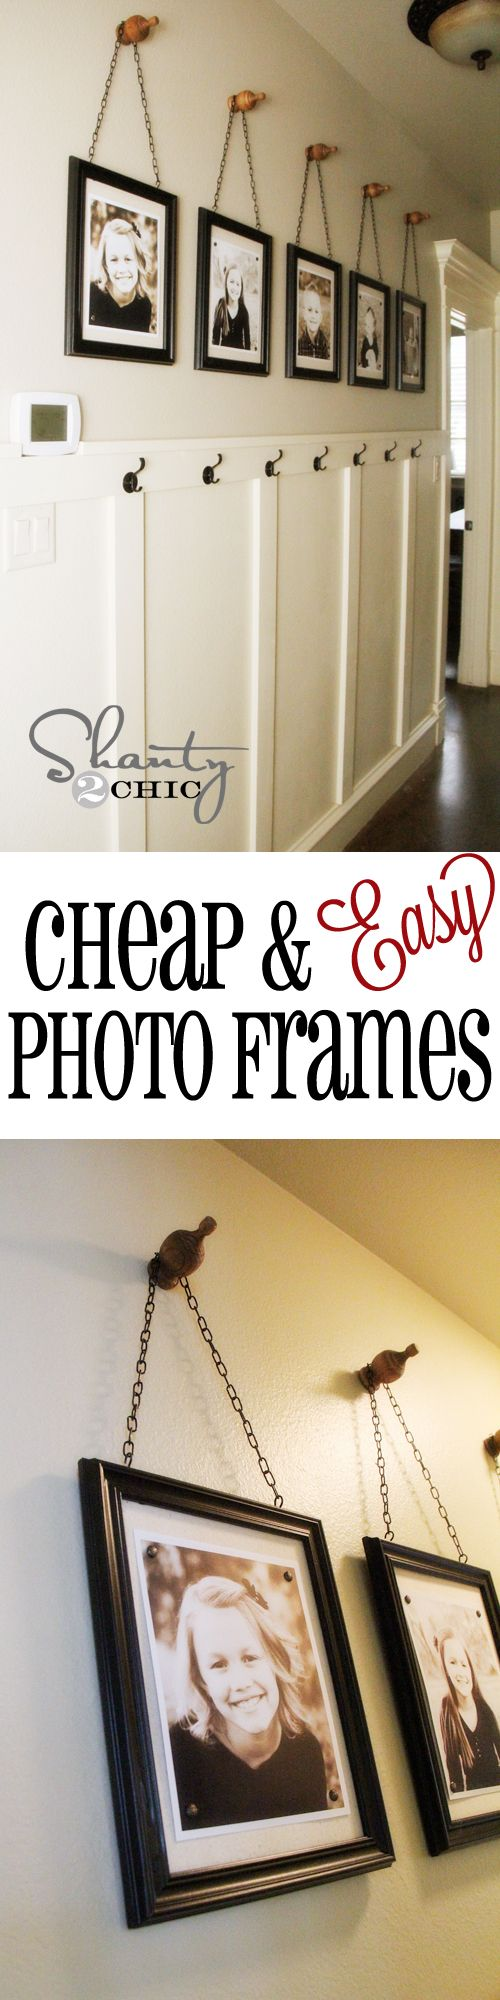 Cheap  Easy Picture Frames!  All you need is a hot glue gun... Woohoo!